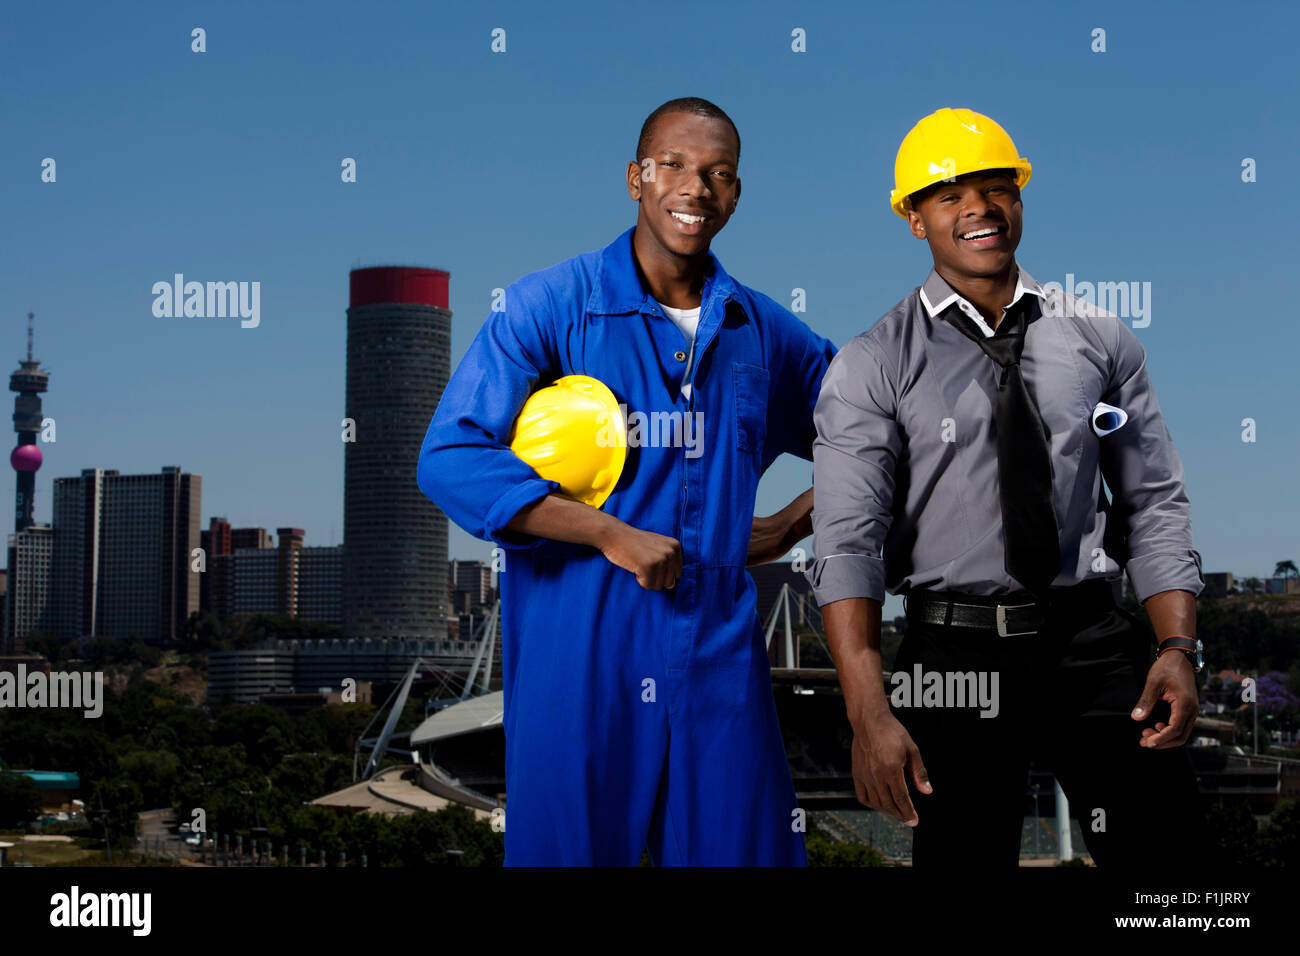 Two men with hardhats stand with cityscape in background - Stock Image